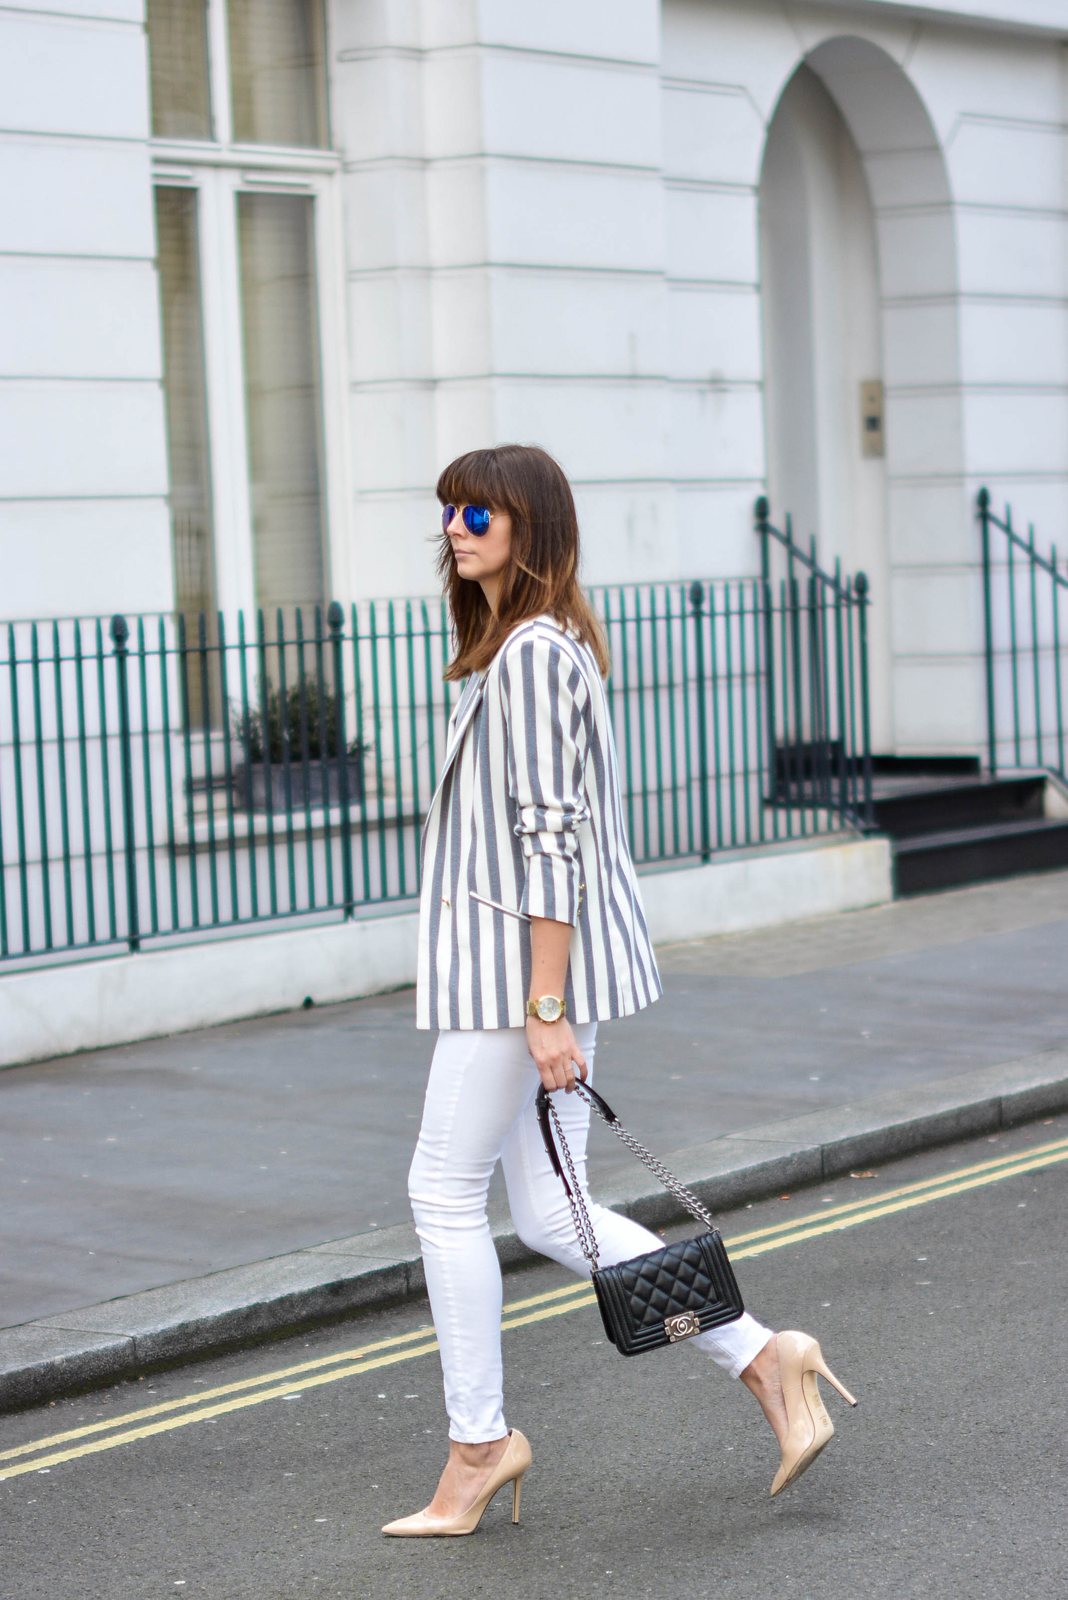 EJSTYLE - Emma Hill, River Island white skinny jeans, River Island stripe blazer, black Chanel Boy bag, Daniel footwear nude court shoes, polarised Ray Ban aviators, OOTD, street style